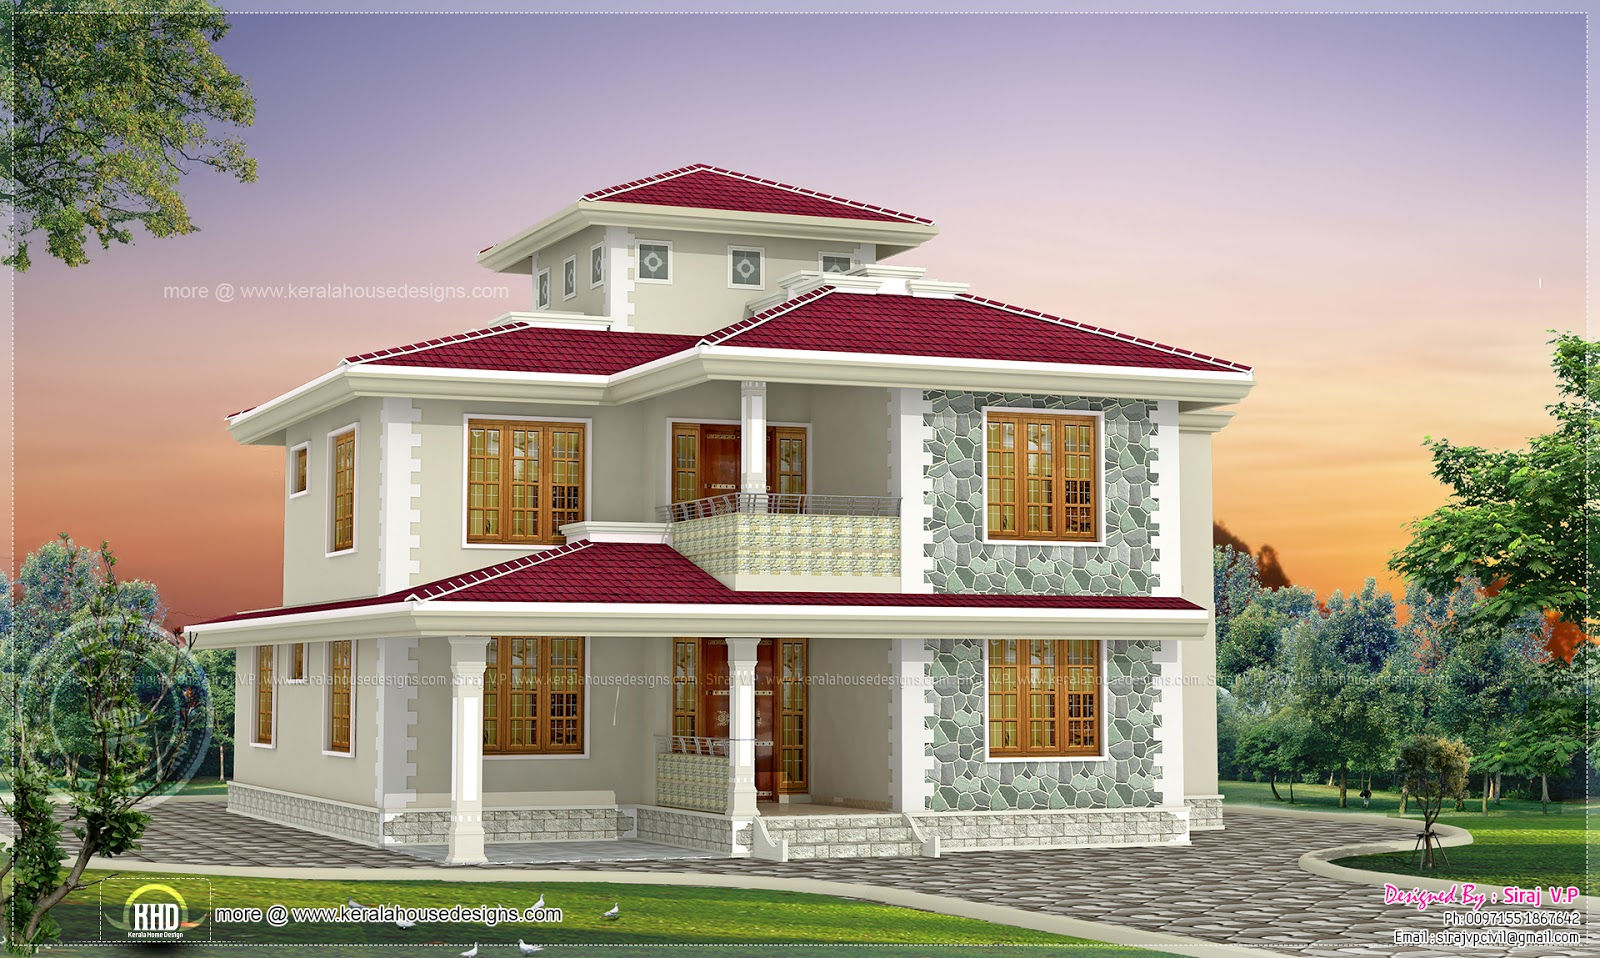 4 bhk kerala style home design indian house plans for 2 bhk house plans south indian style